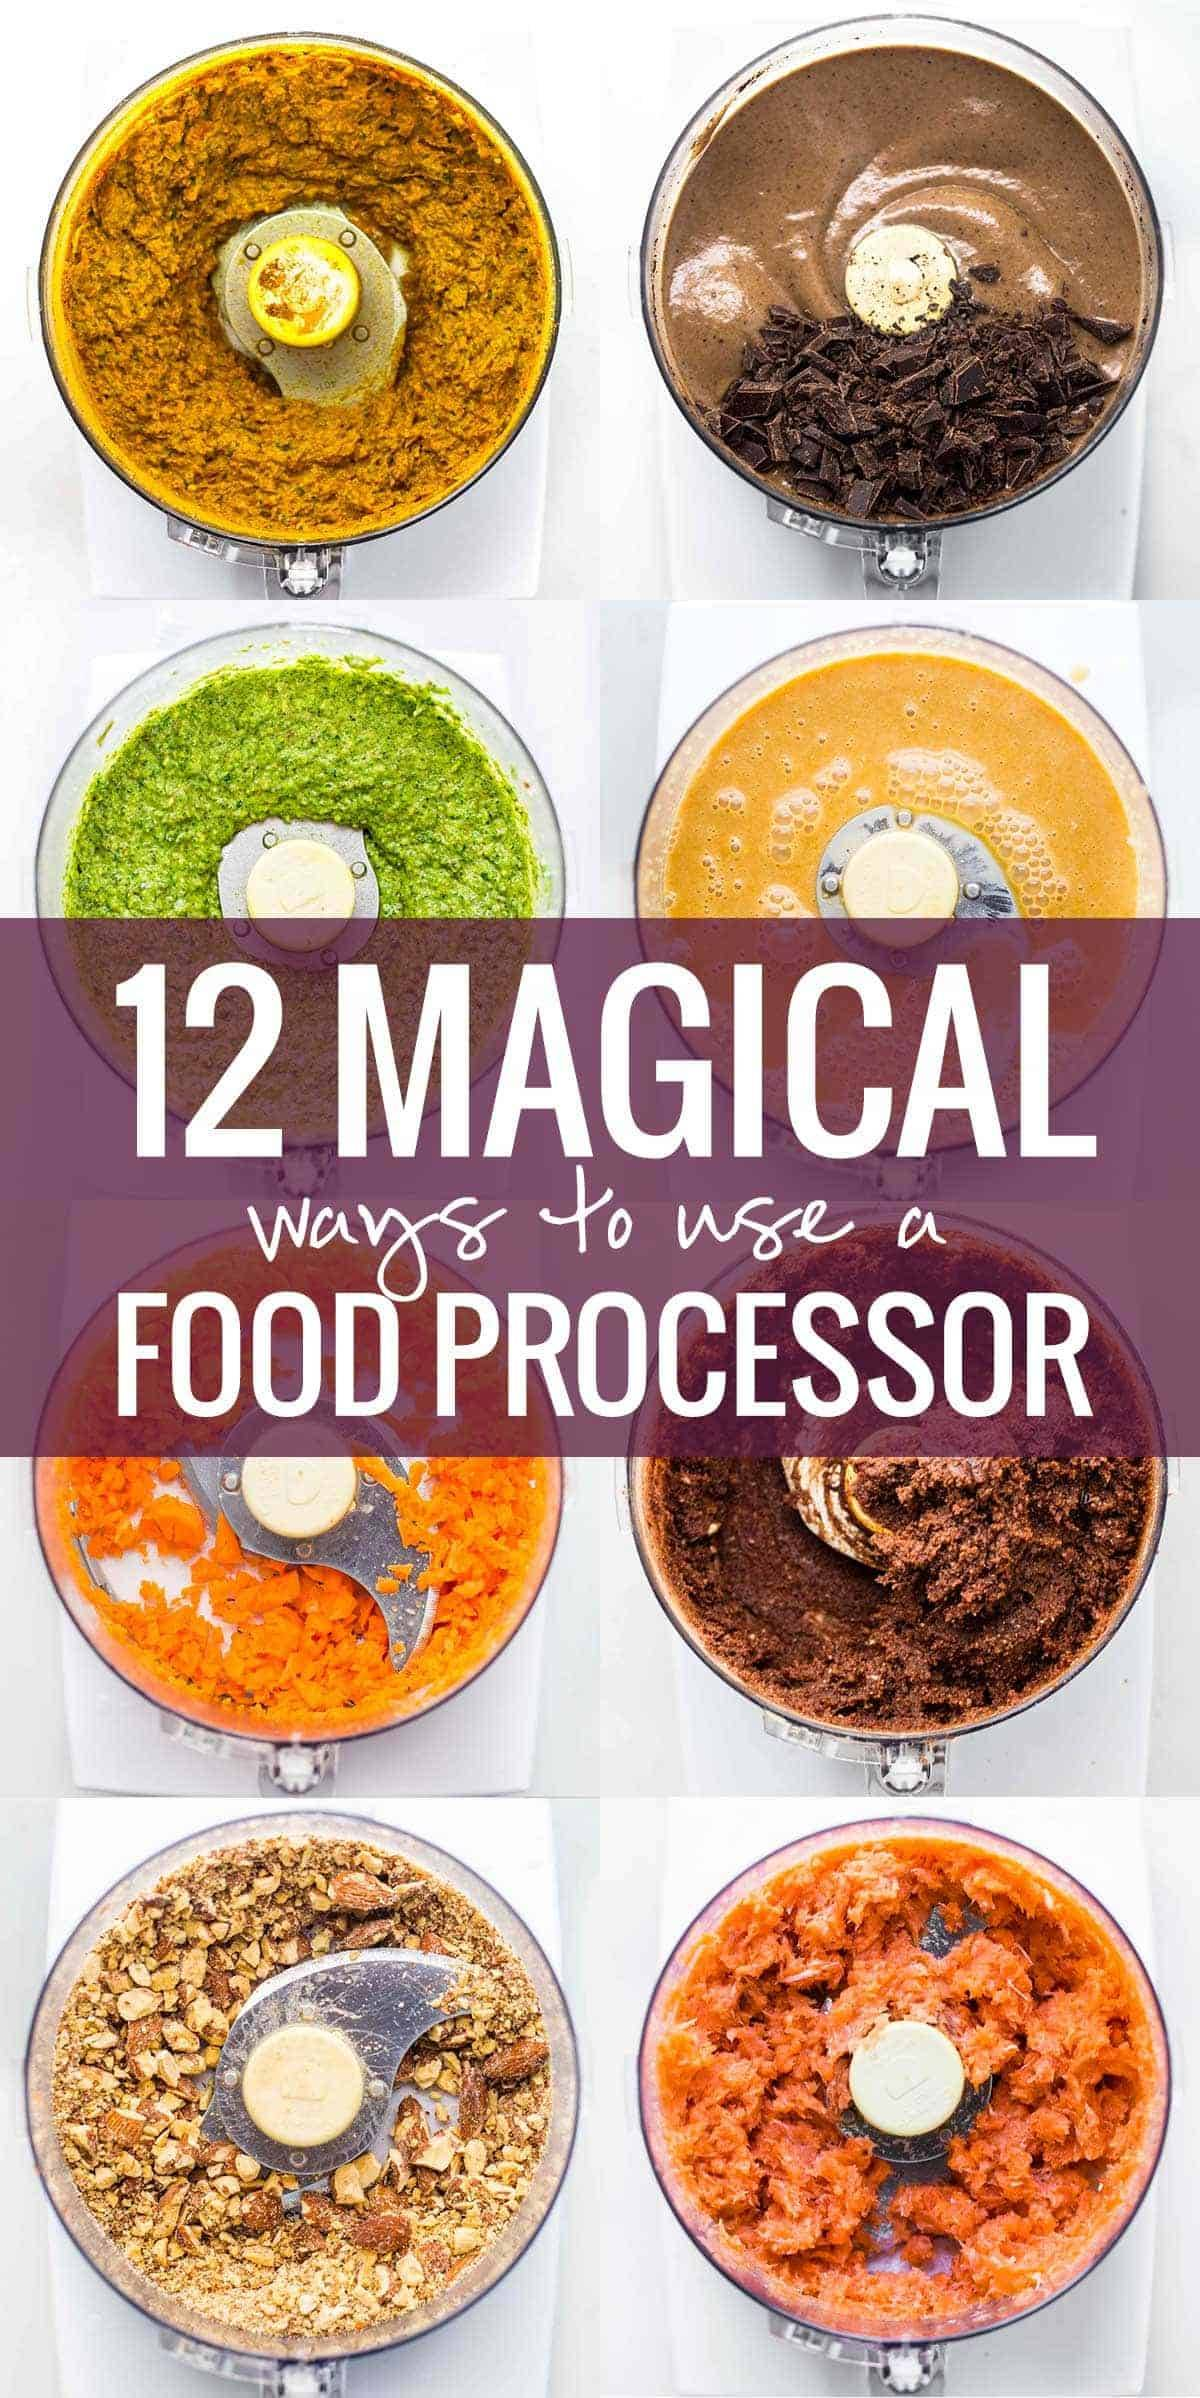 12 Magical Ways to Use a Food Processor collage.